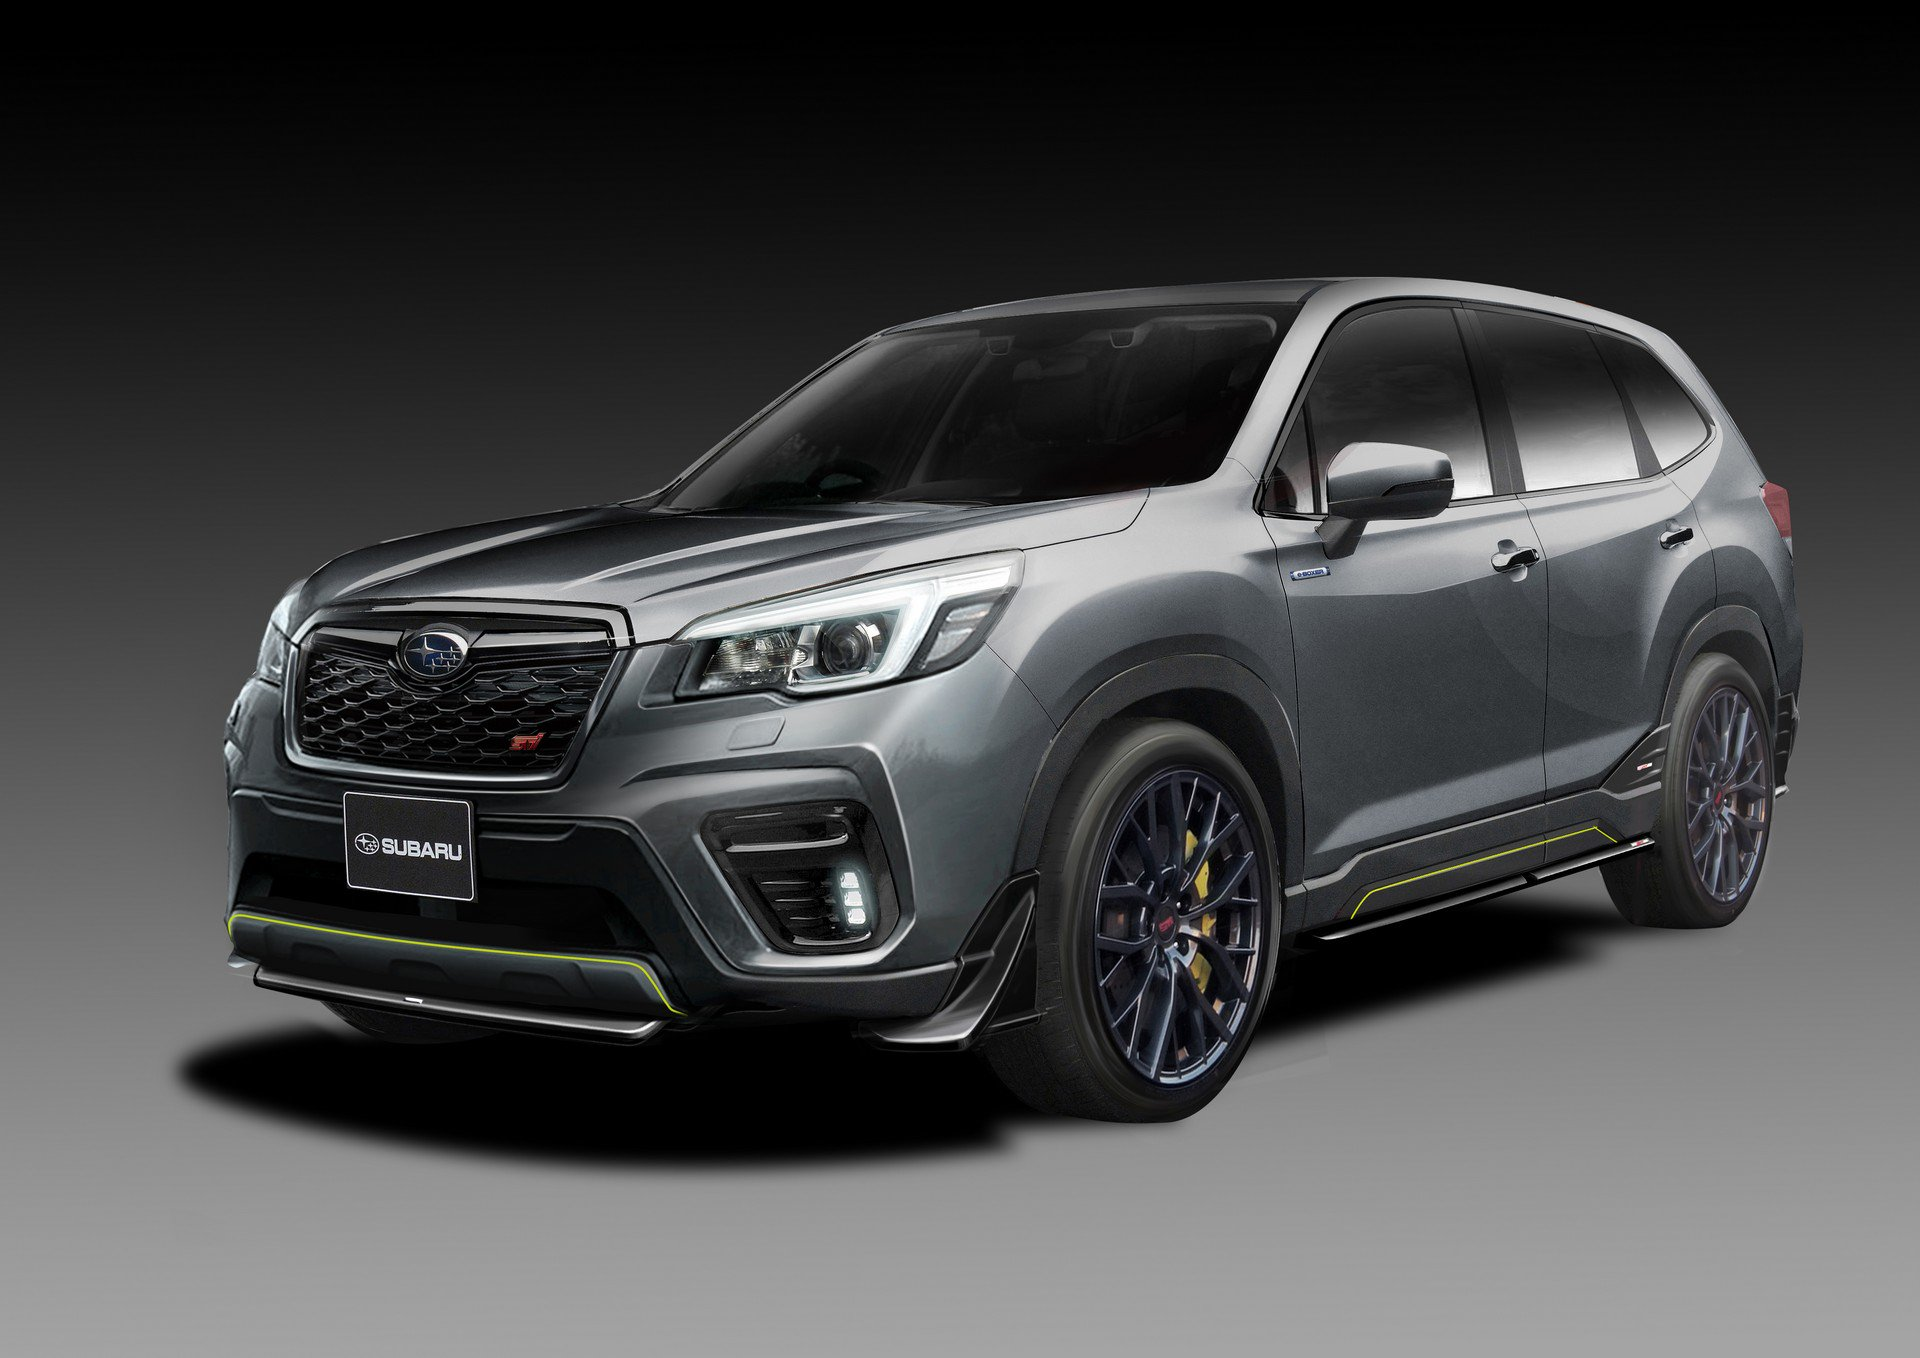 Subaru has announced the Impreza and Forester concepts